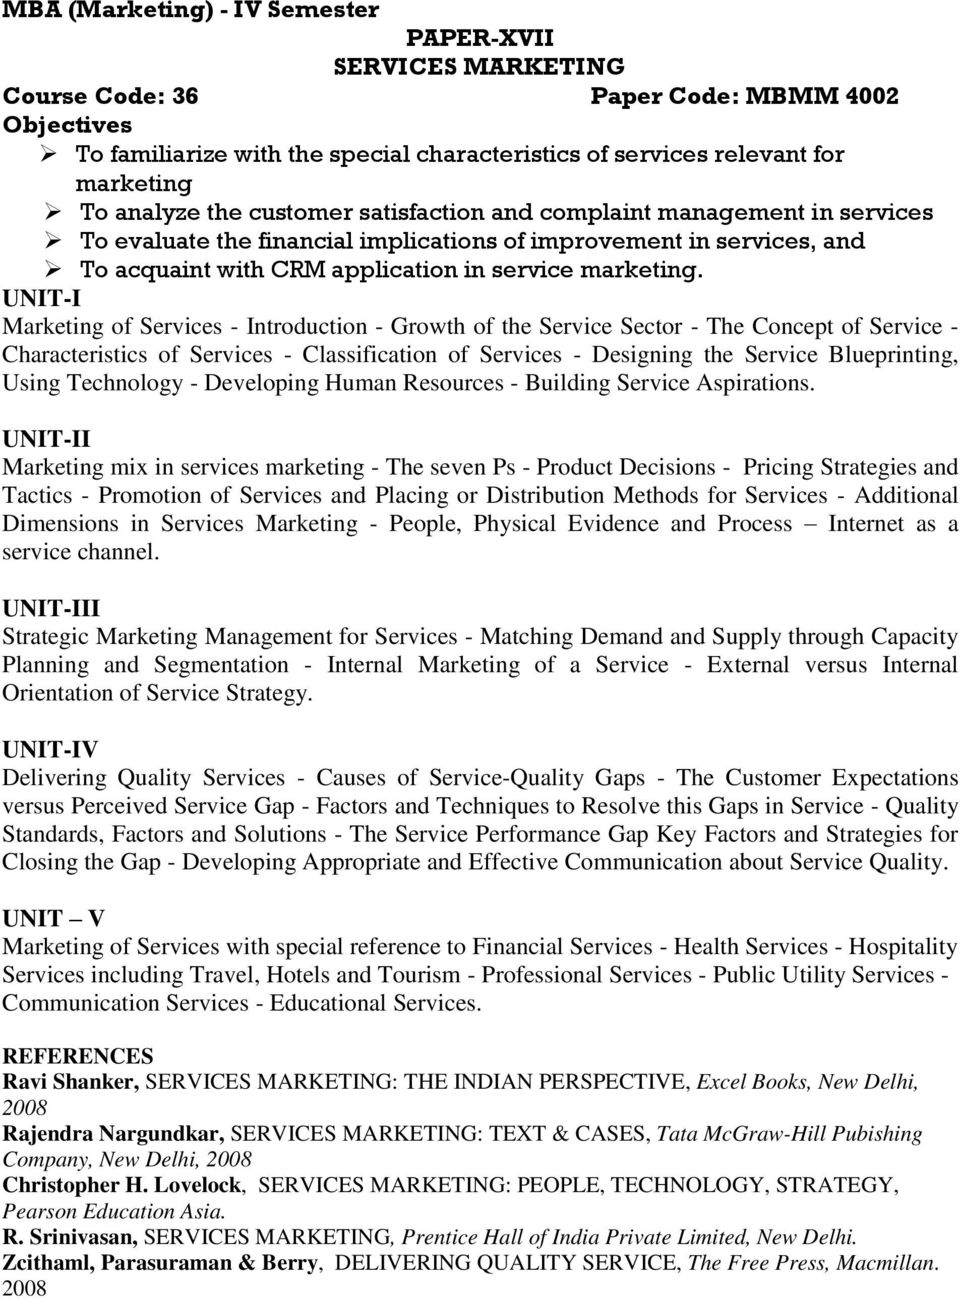 UNIT-I Marketing of Services - Introduction - Growth of the Service Sector - The Concept of Service - Characteristics of Services - Classification of Services - Designing the Service Blueprinting,